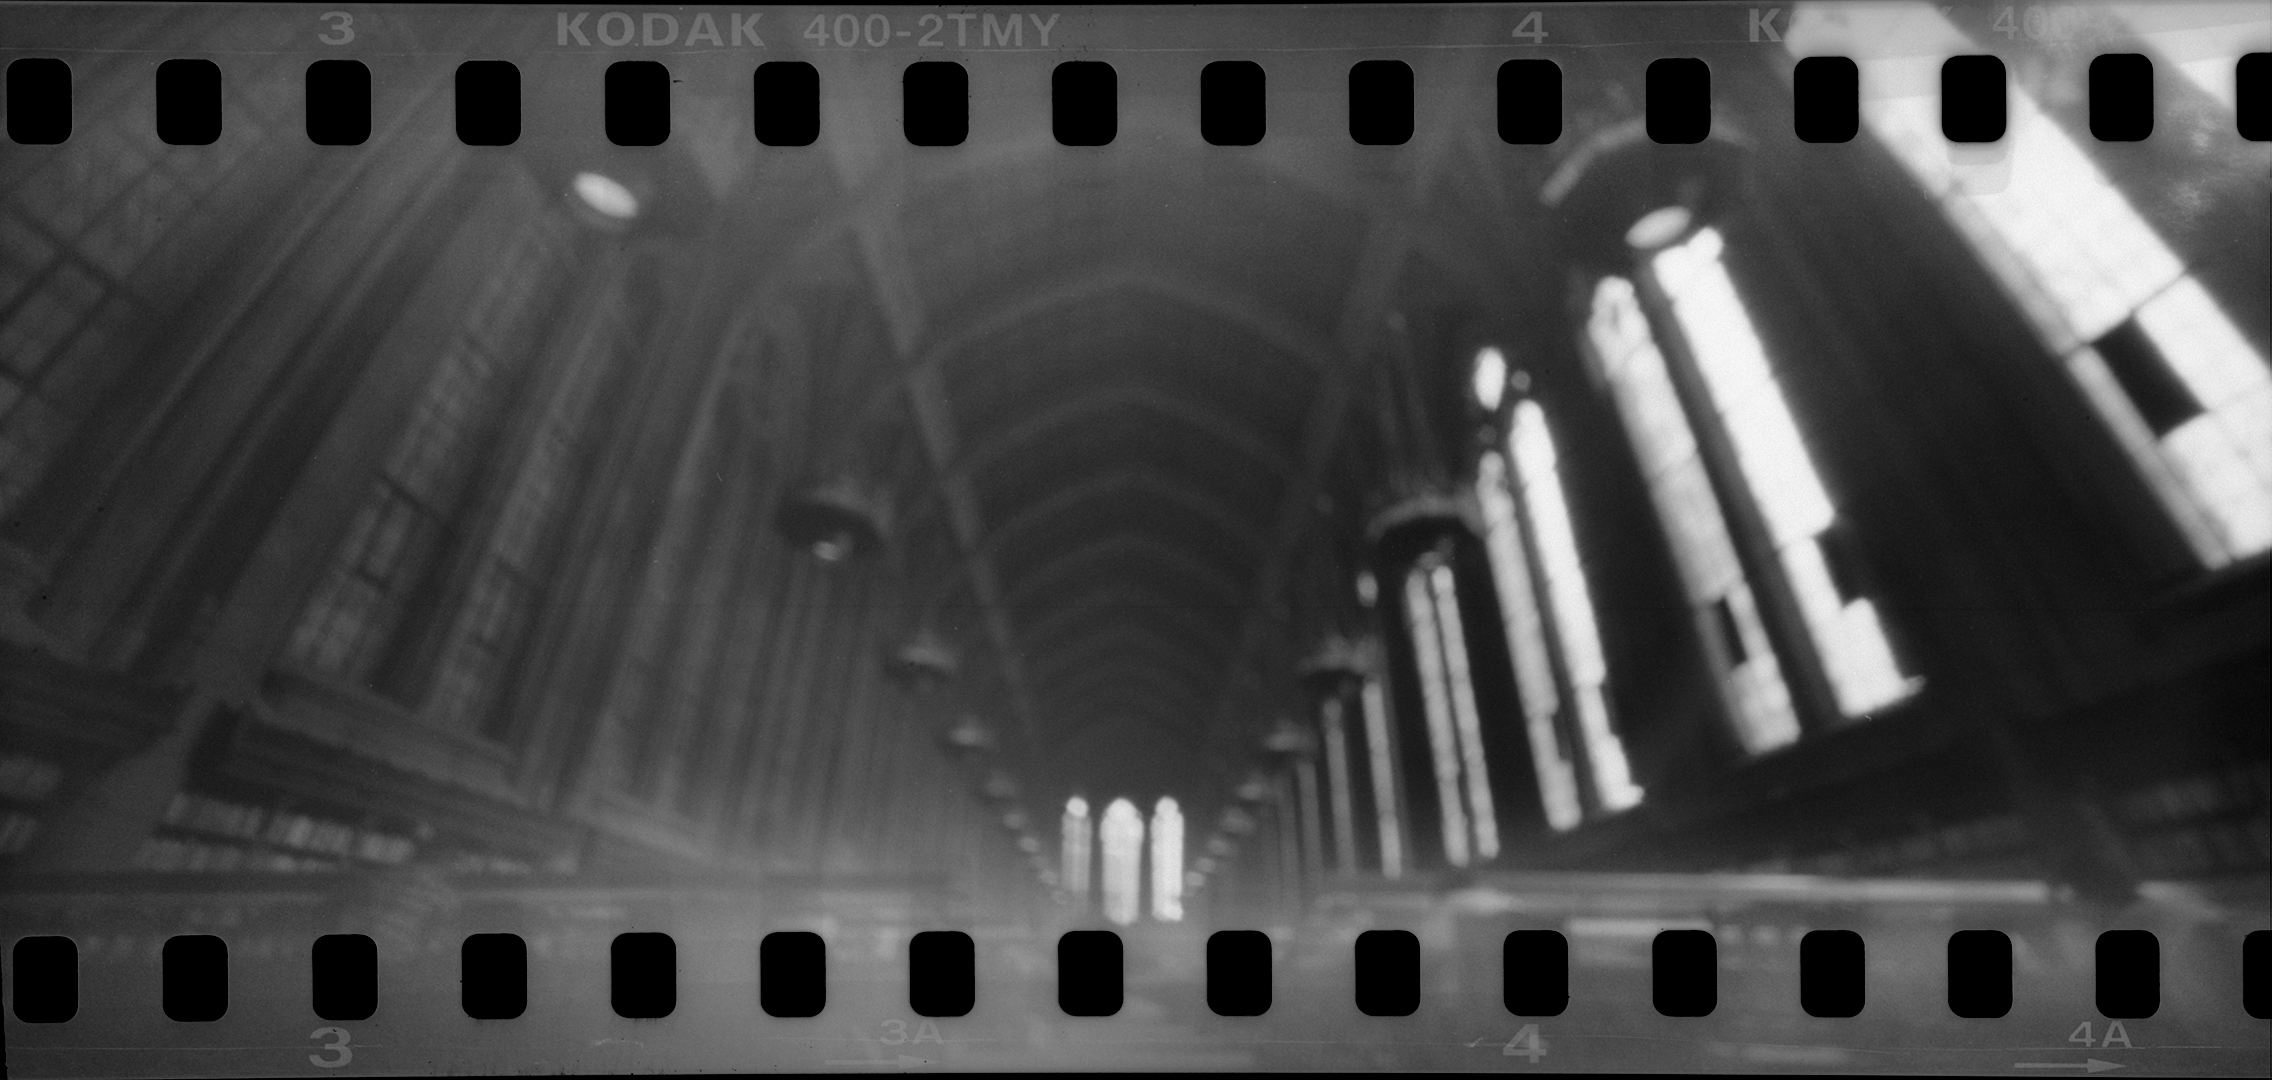 Suzzallo Library's reading room. 30 second exposure.